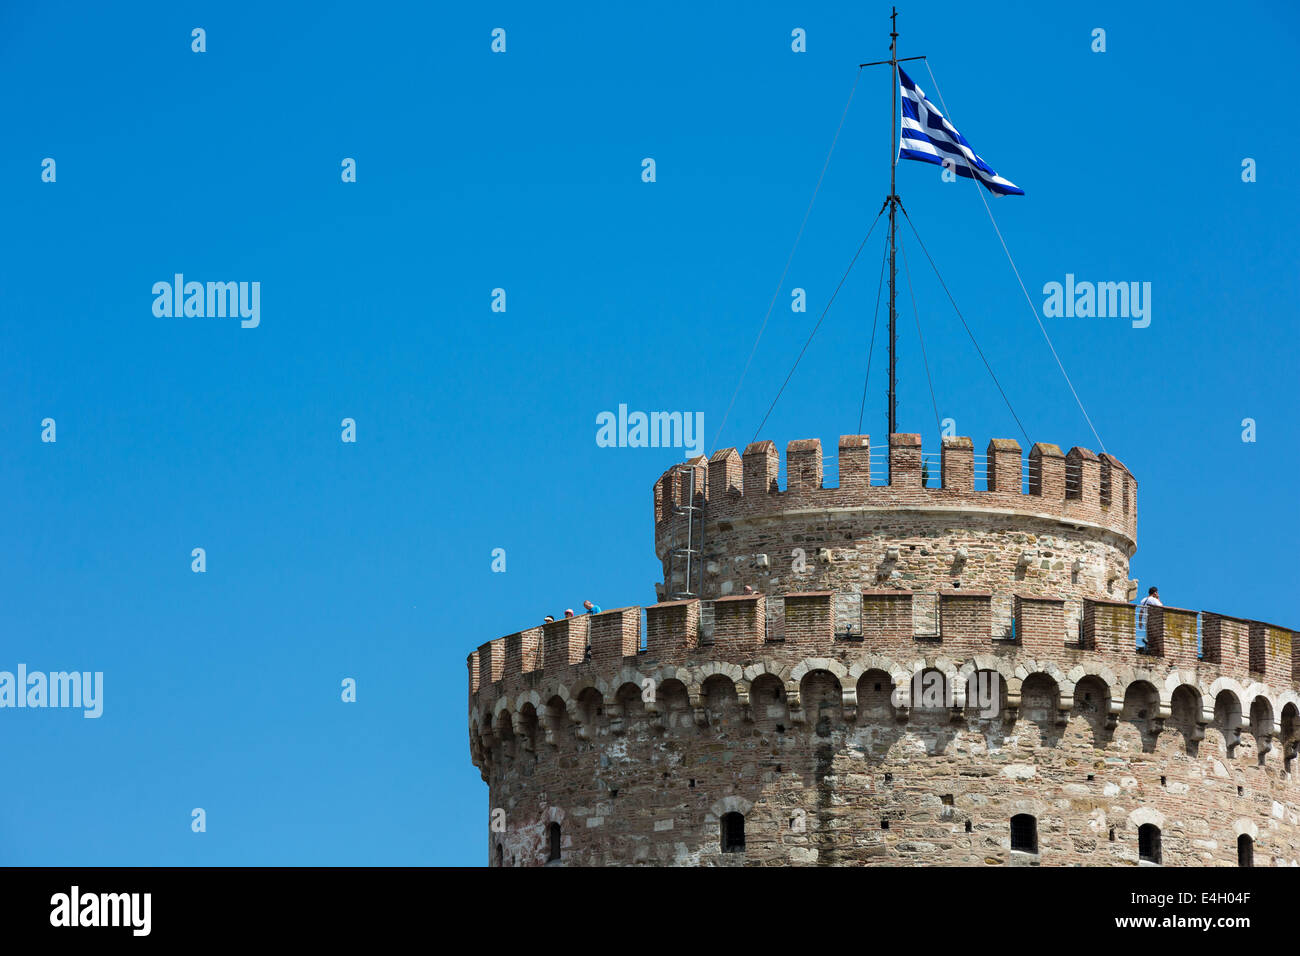 Thessaloniki, Greece. 11th July 2014. Tourists onto the city`s landmark, the White Tower in Thessaloniki, Greece. - Stock Image